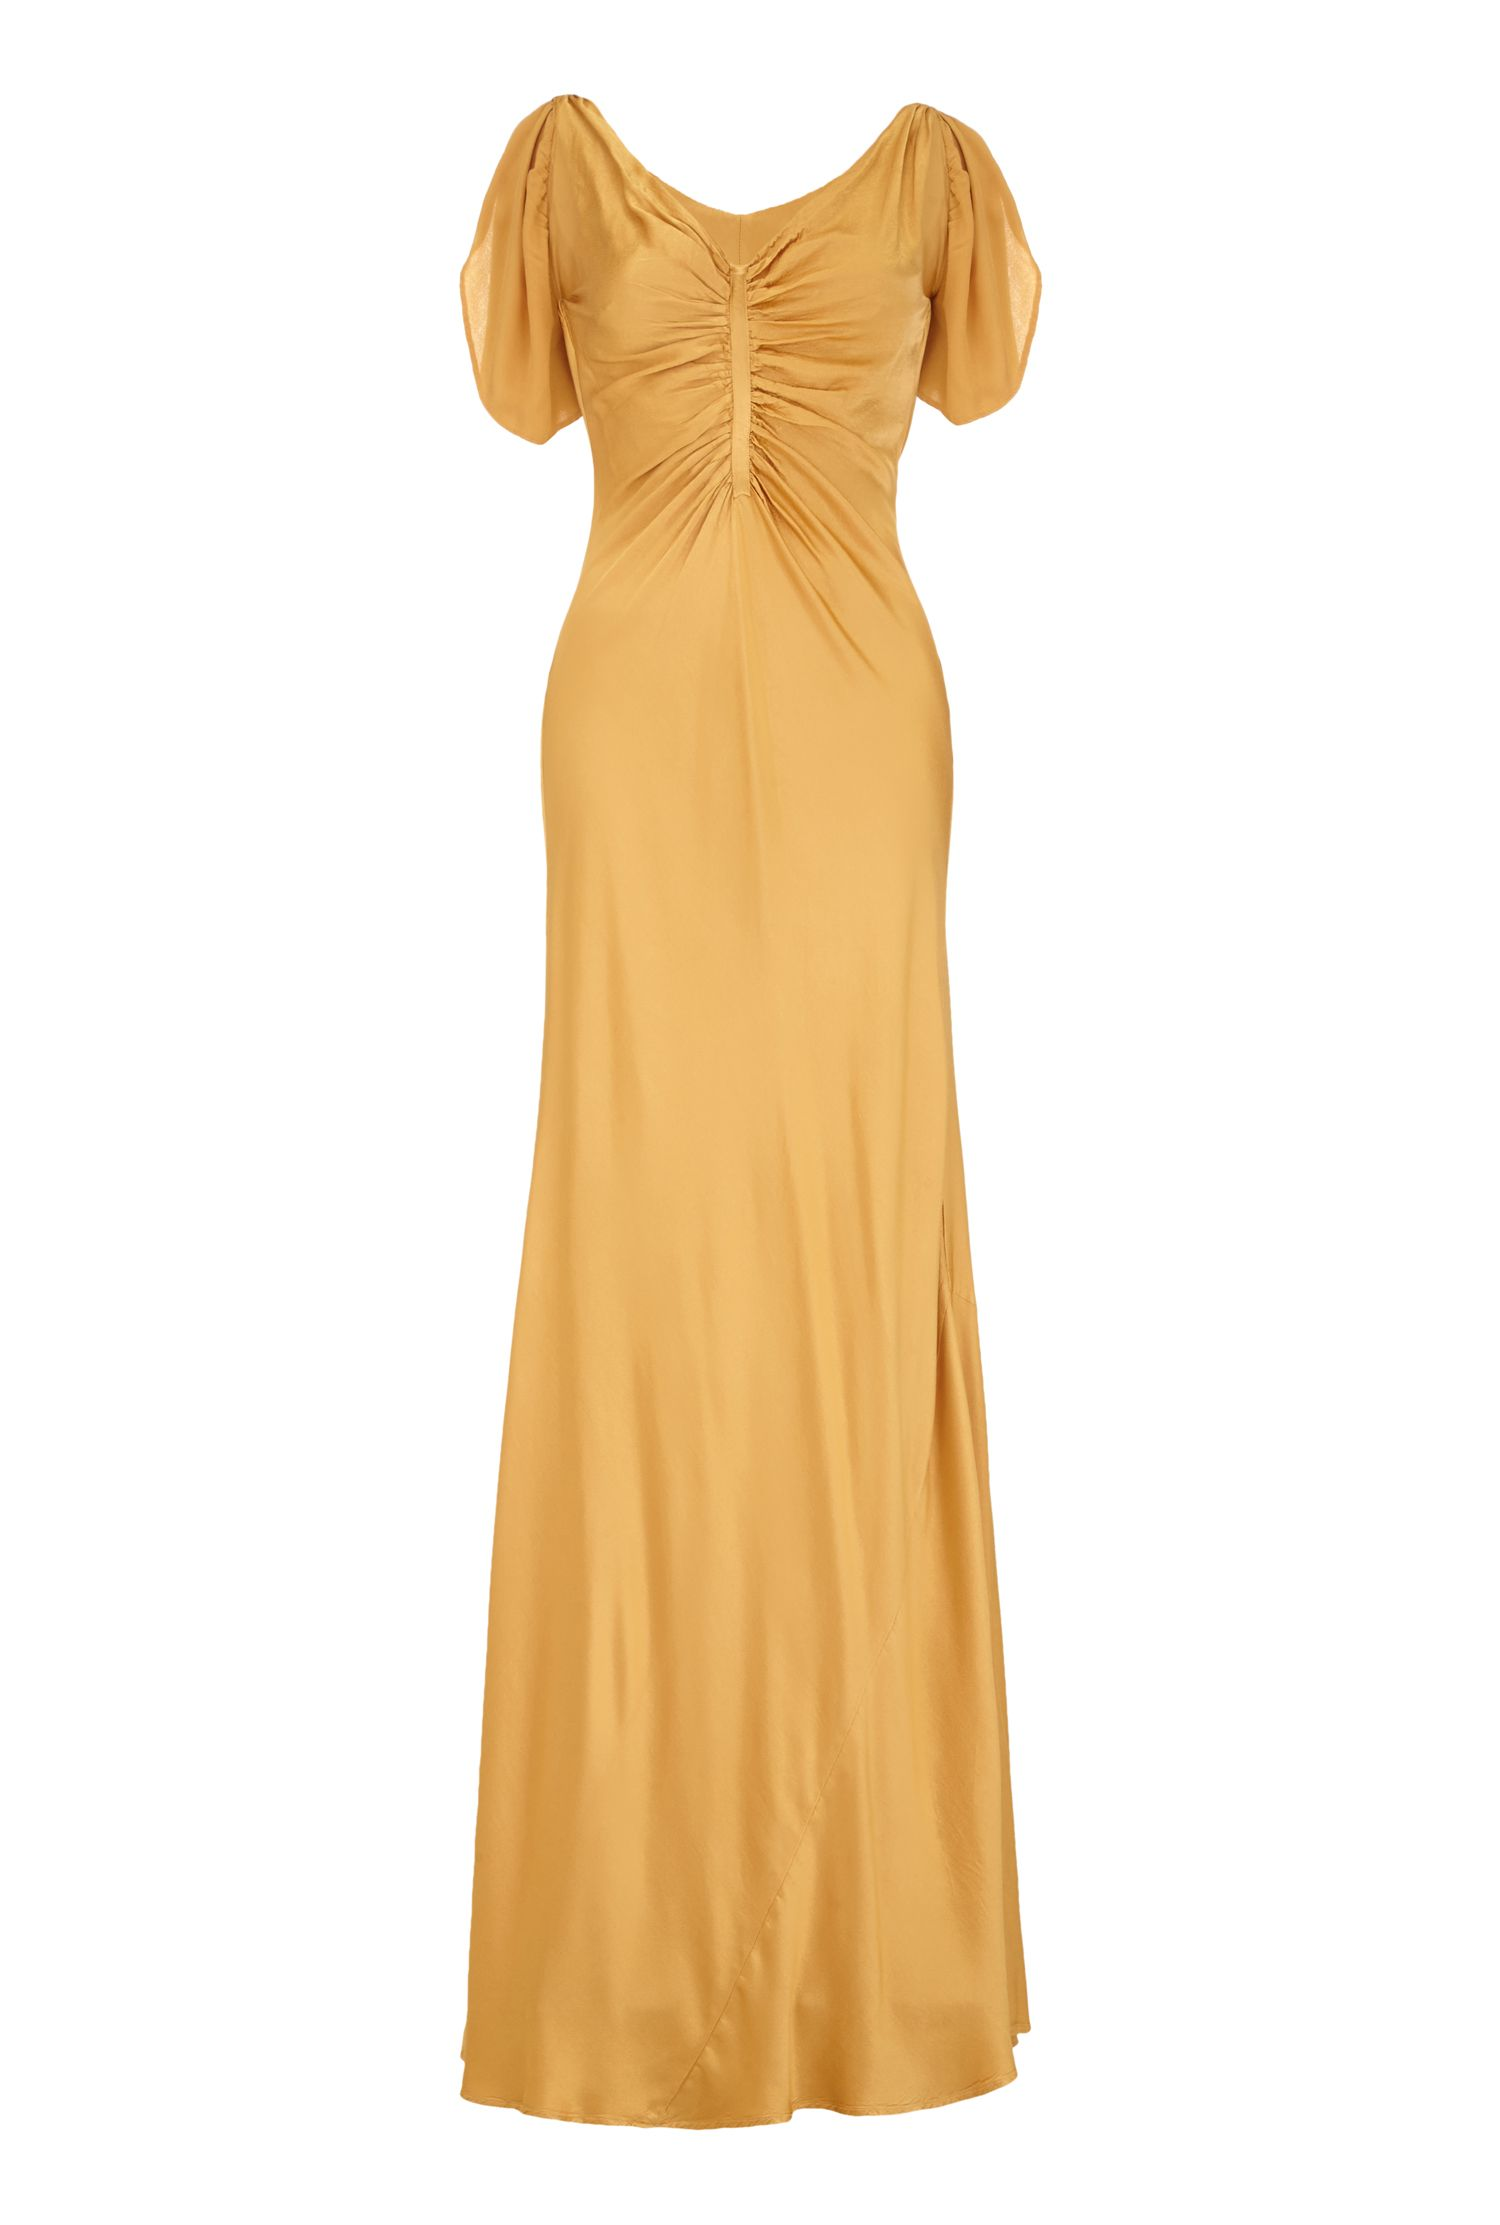 Vintage Inspired Bridesmaid Dresses Ghost Olivia Dress Brushed Gold £88.50 AT vintagedancer.com